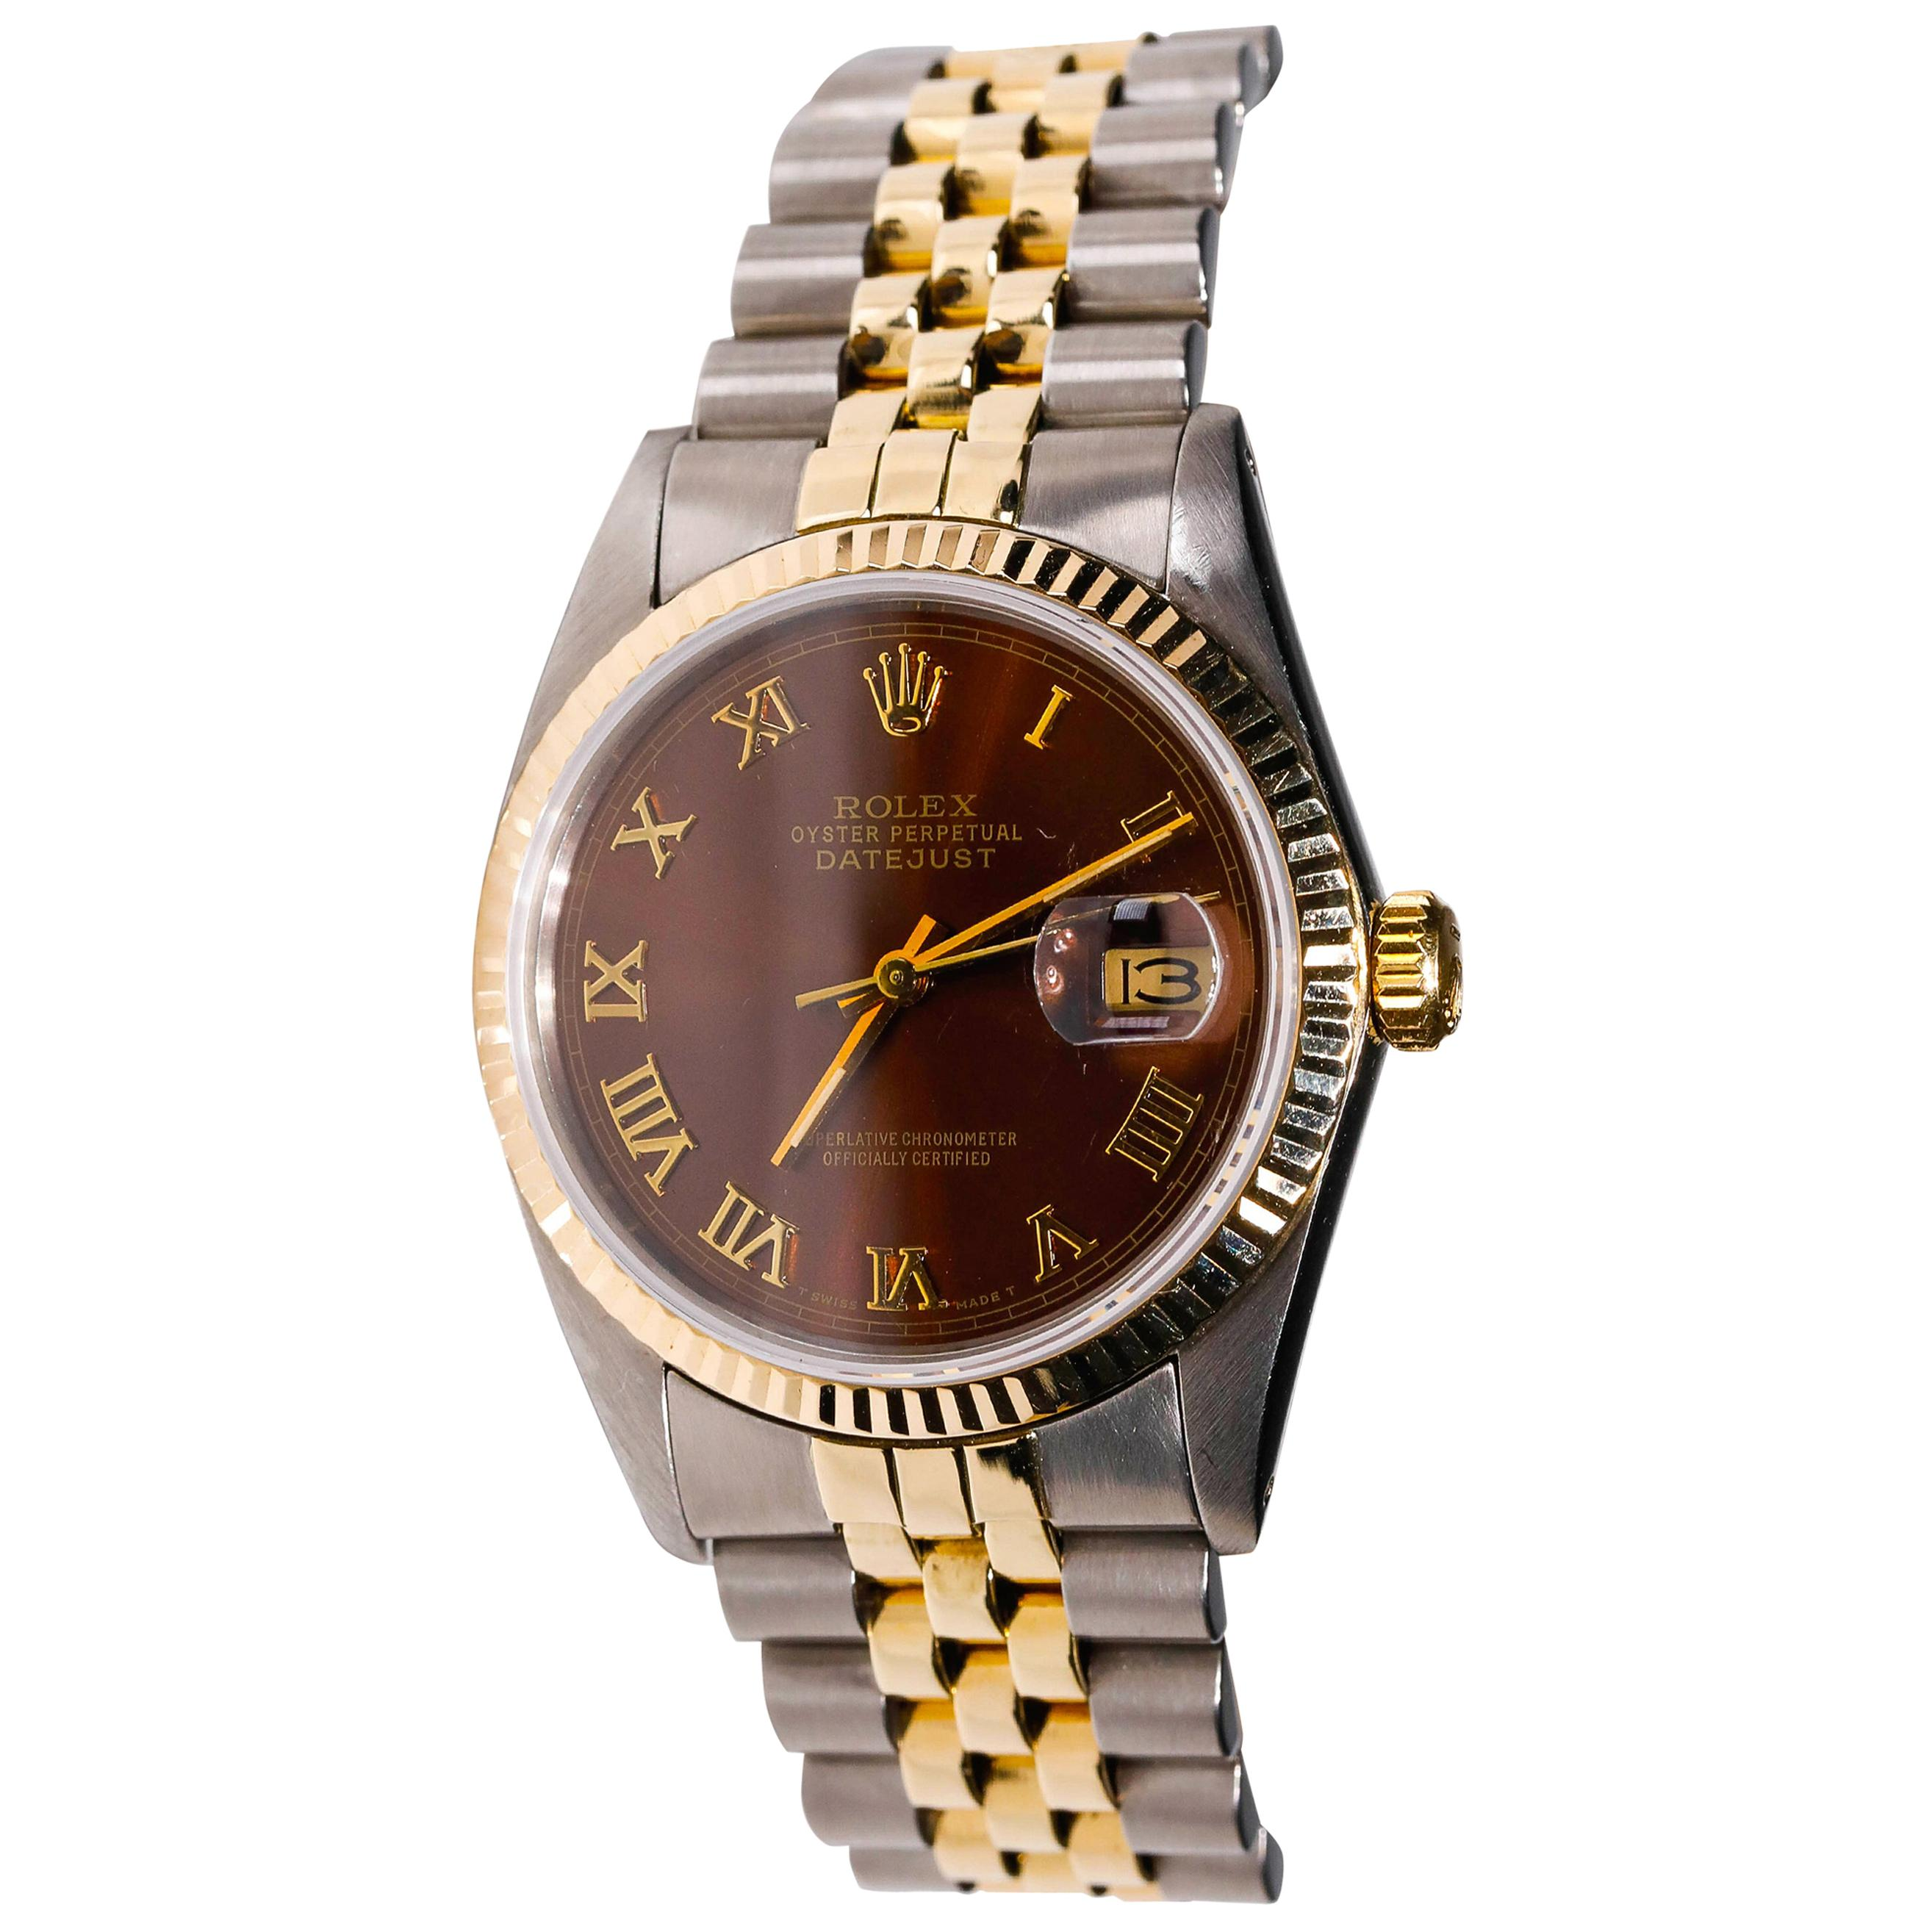 Rolex 2-Tone Stainless Steel Datejust Brown Roman Numerals Automatic Wristwatch